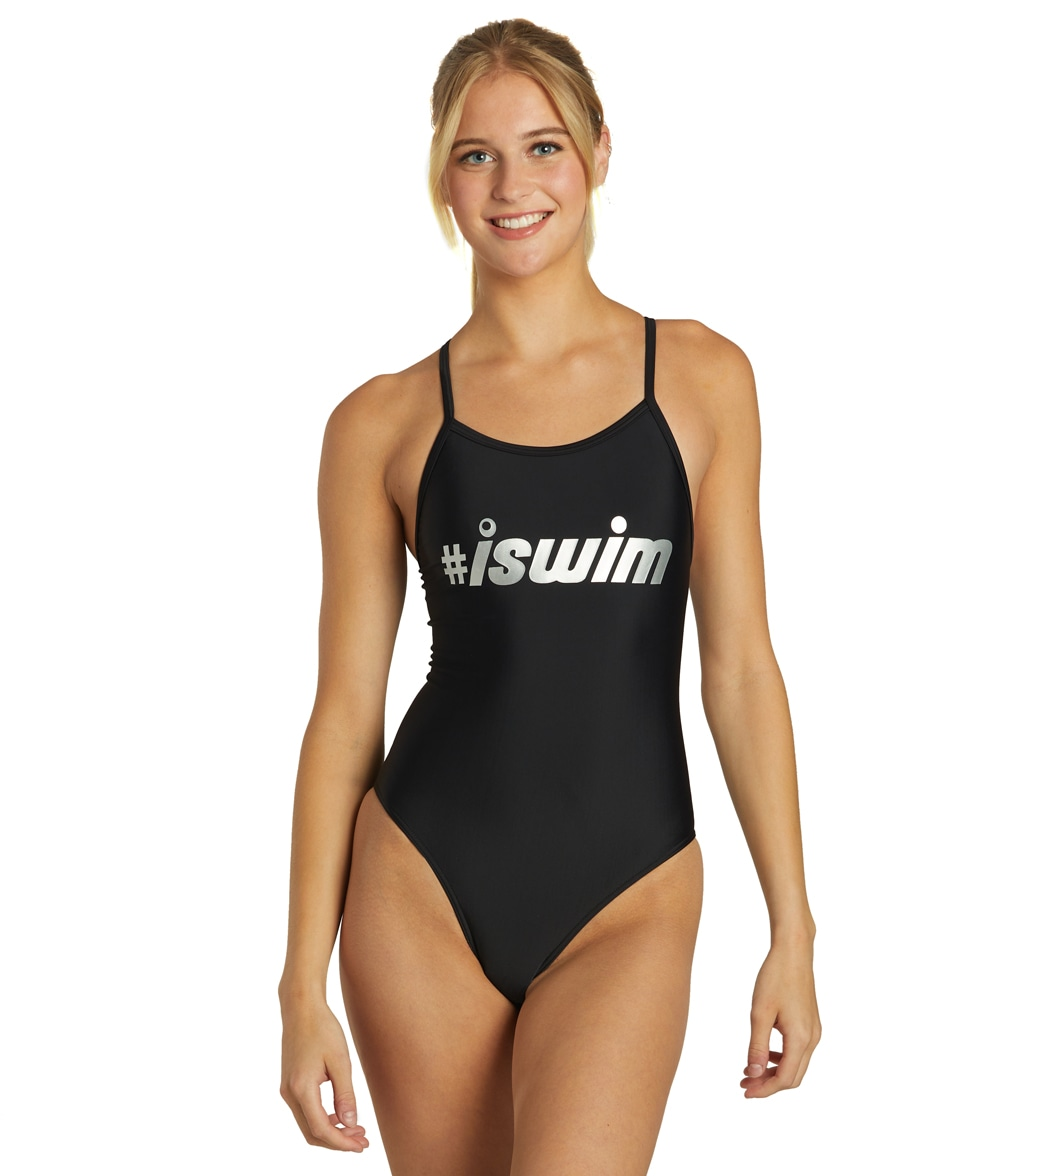 f492ebcef6668 iSwim Women's Hashtag Thin Strap One Piece Swimsuit at SwimOutlet.com